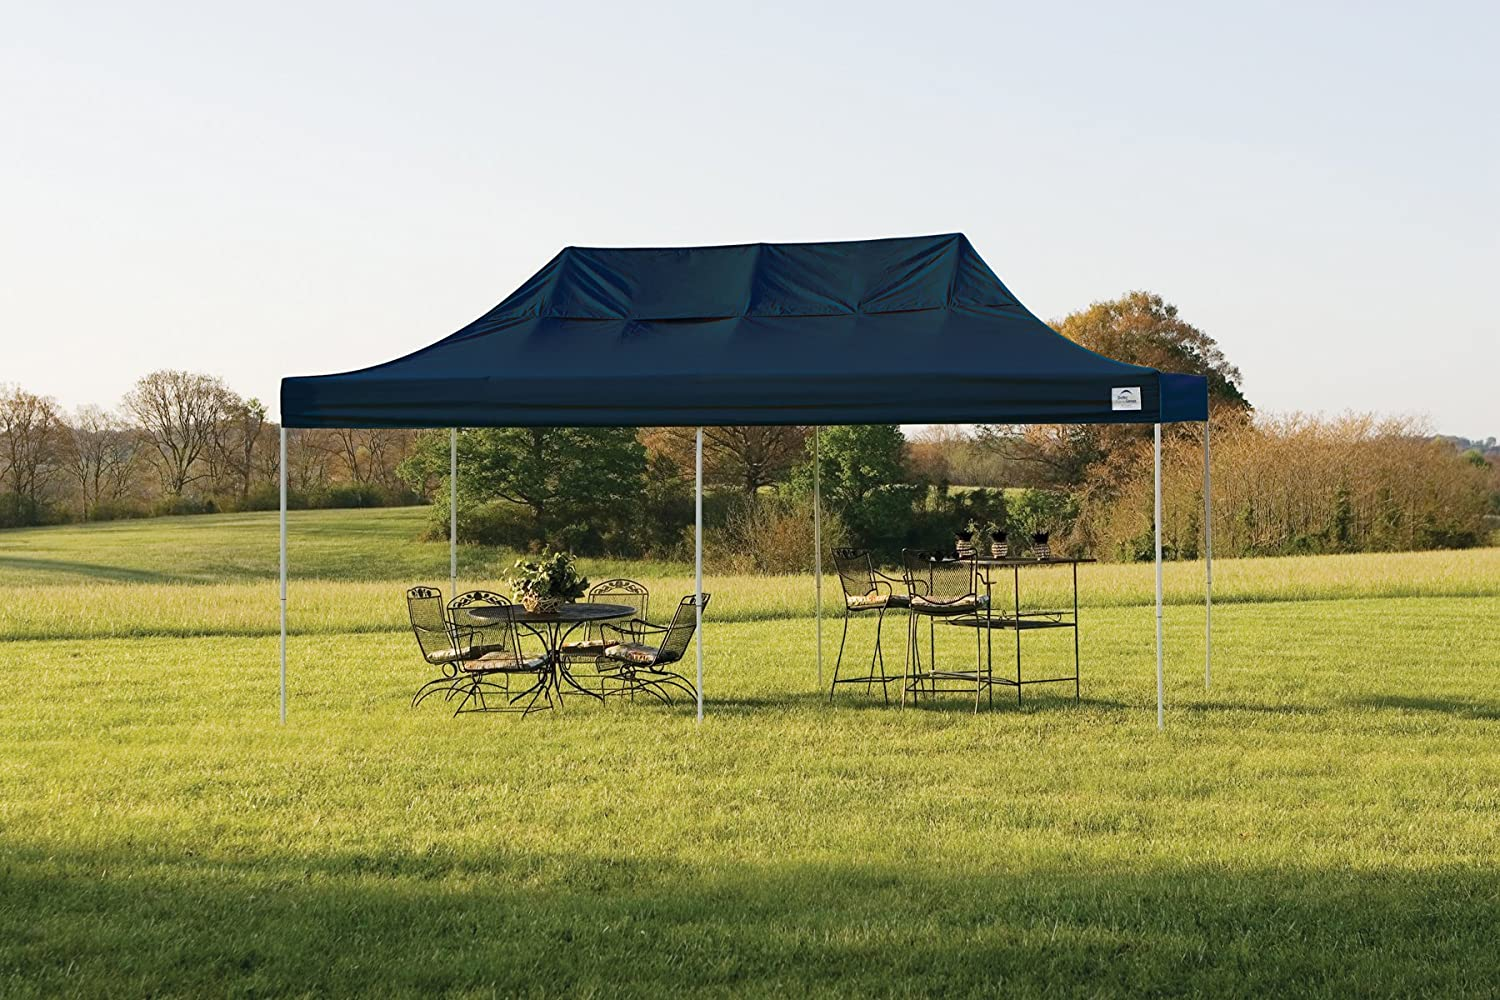 Amazon.com  ShelterLogic Straight Leg Pop-Up Canopy with Roller Bag 10 x 20 ft.  Outdoor Canopies  Sports u0026 Outdoors & Amazon.com : ShelterLogic Straight Leg Pop-Up Canopy with Roller ...